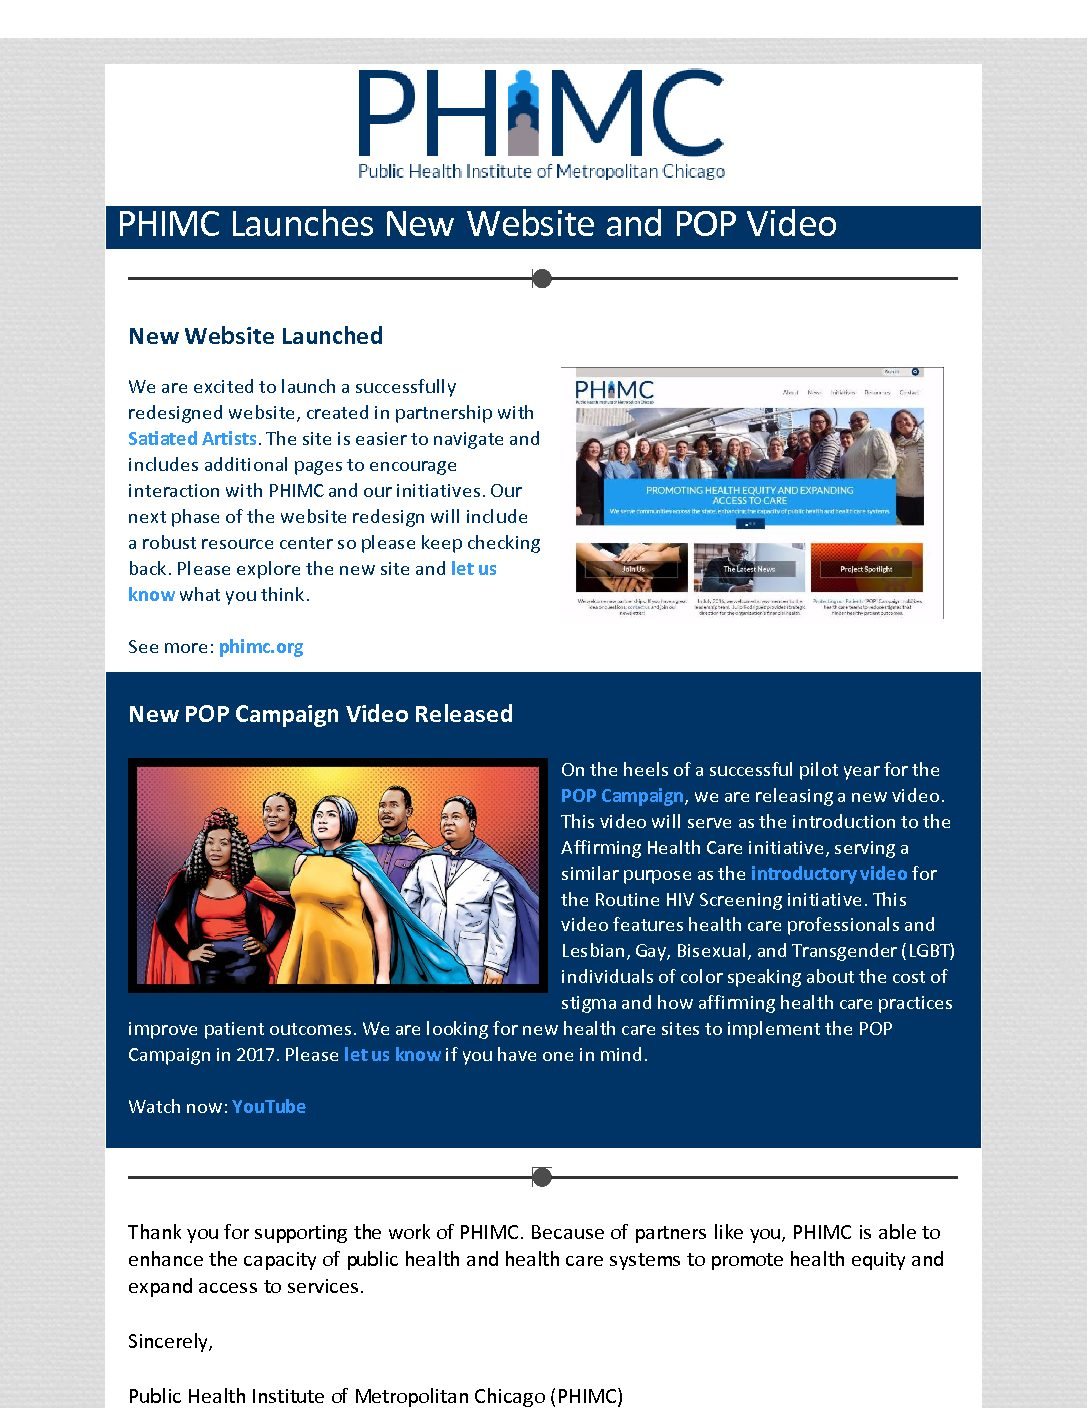 PHIMC Launches New Website and POP Video